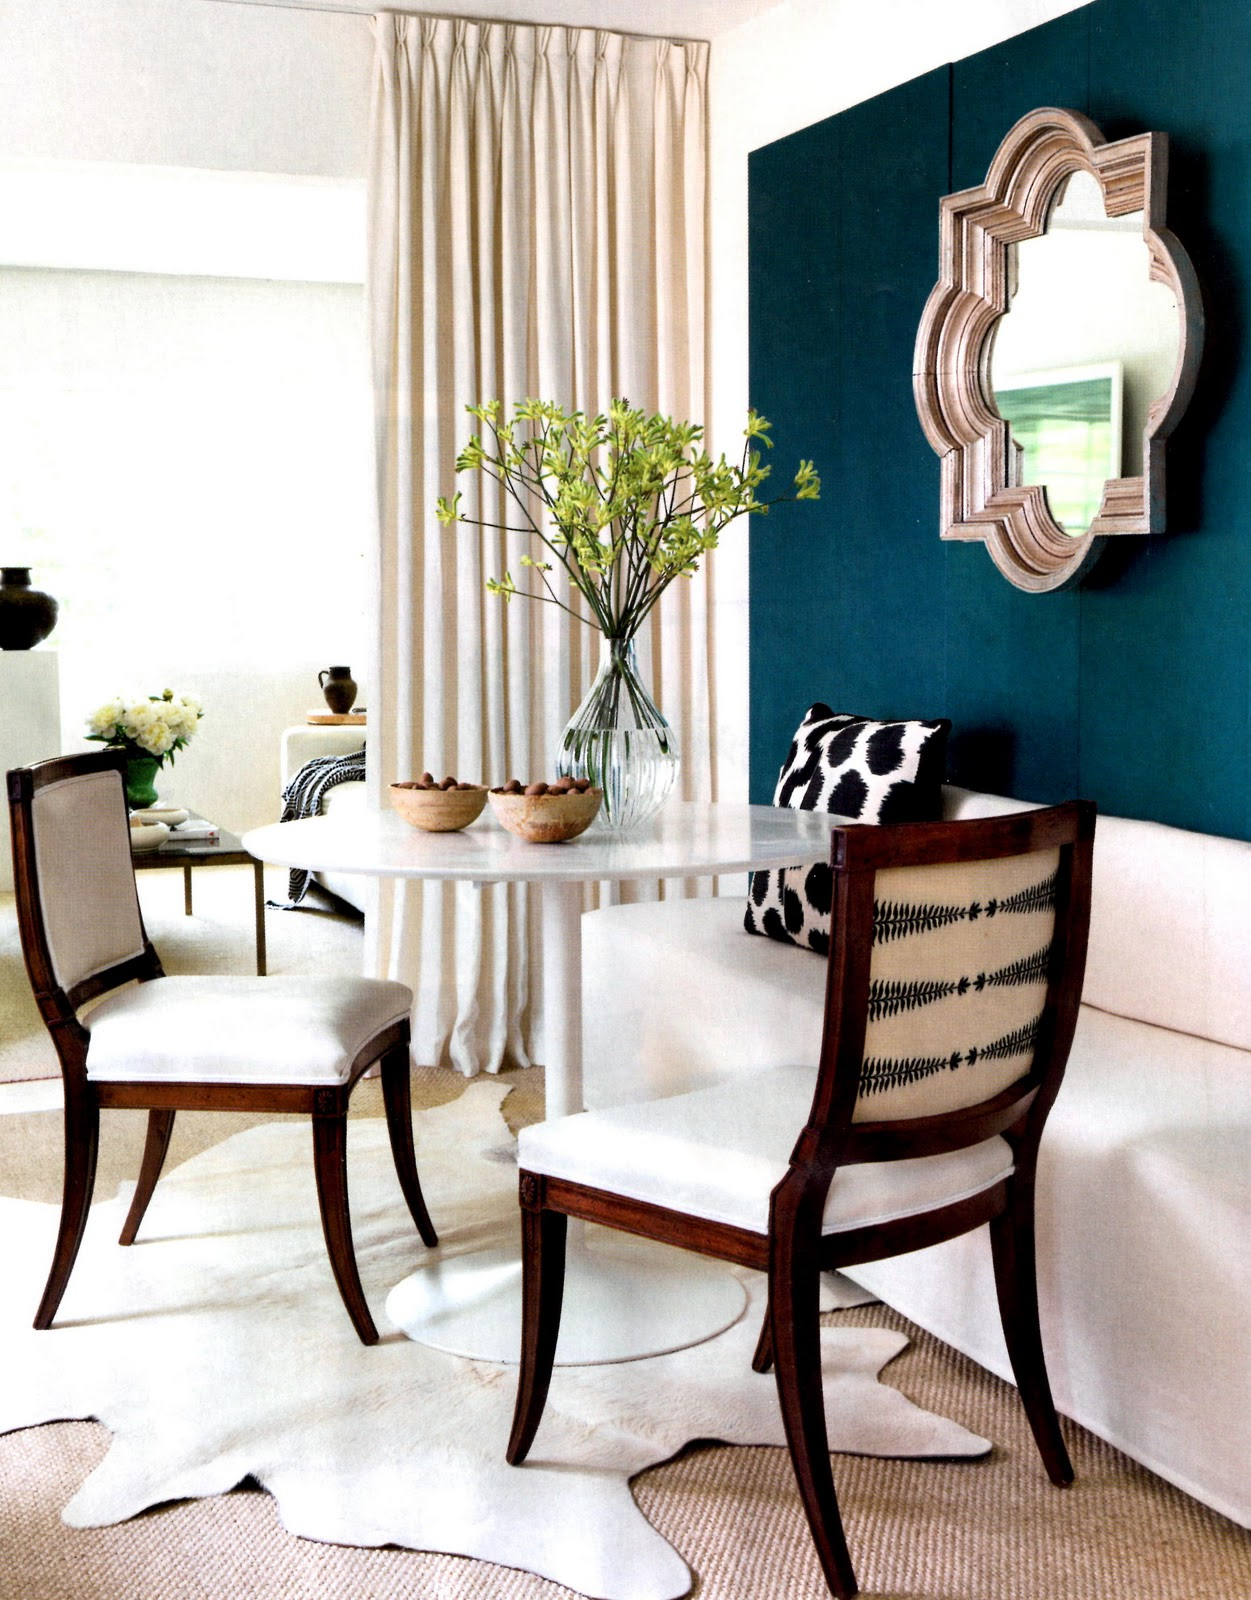 Banquette seating gretha scholtz for Teal dining room decorating ideas